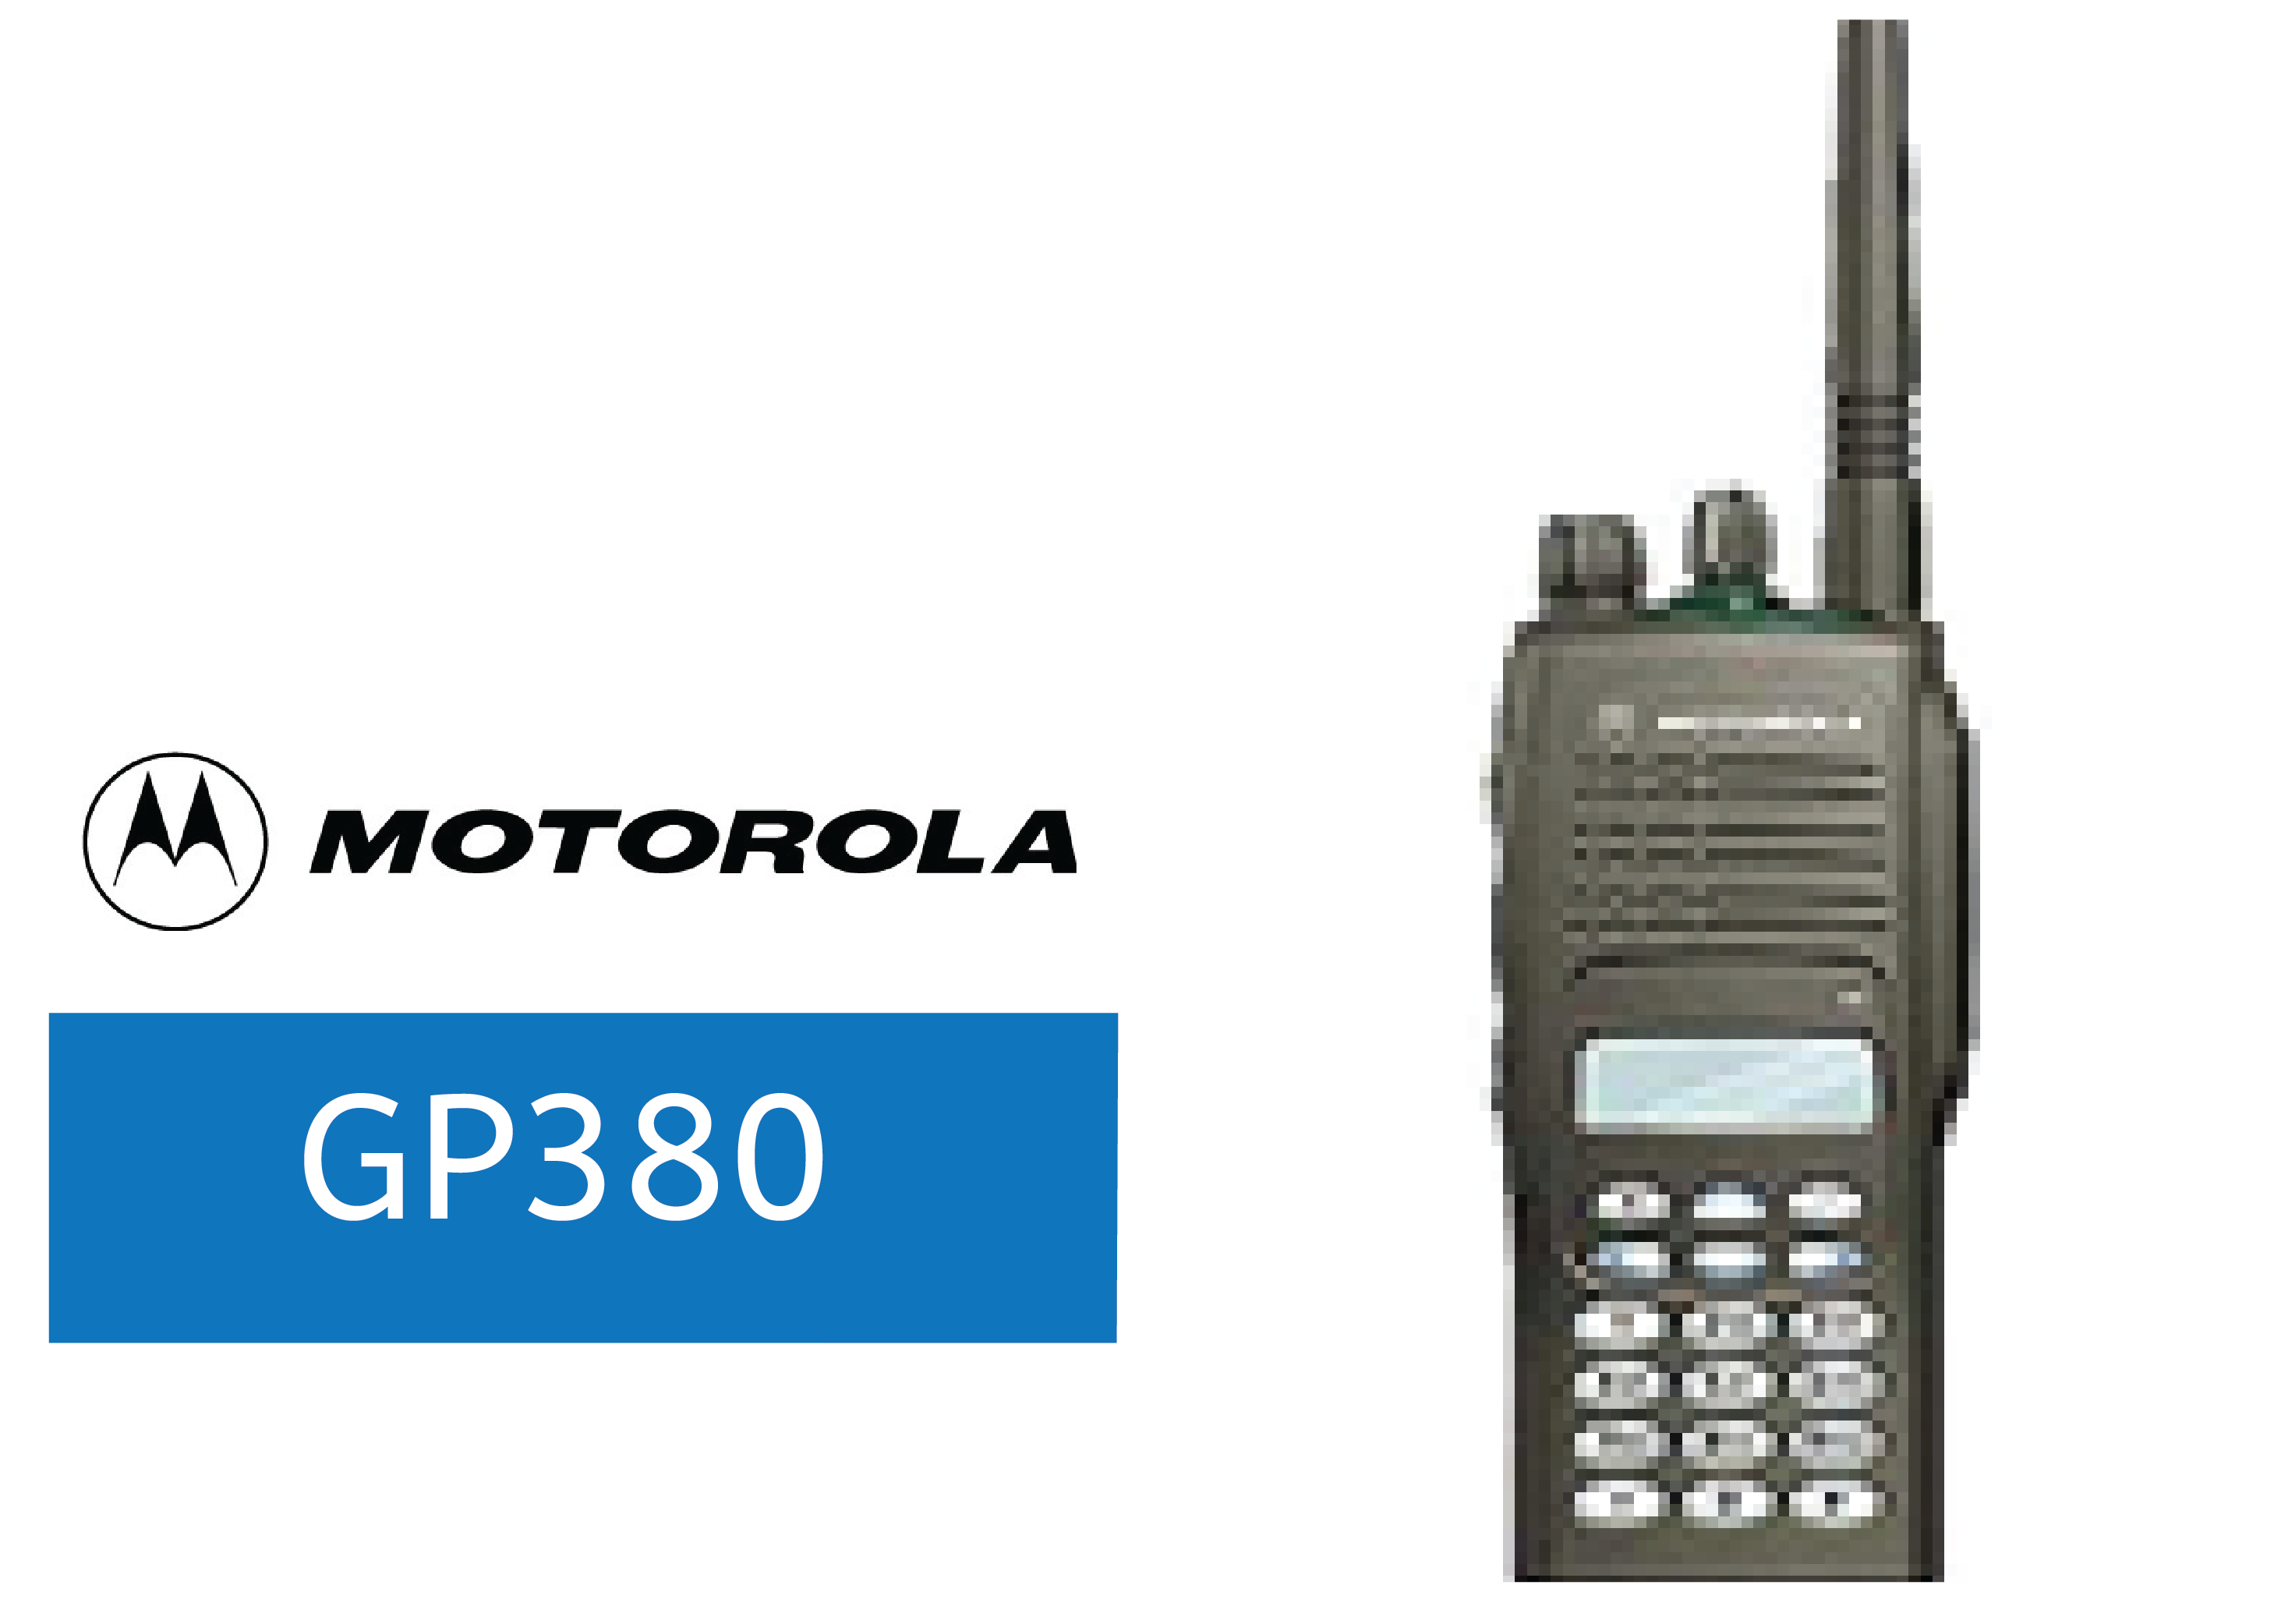 MOTOROLA-GP380-FULL-POWER-RADIO